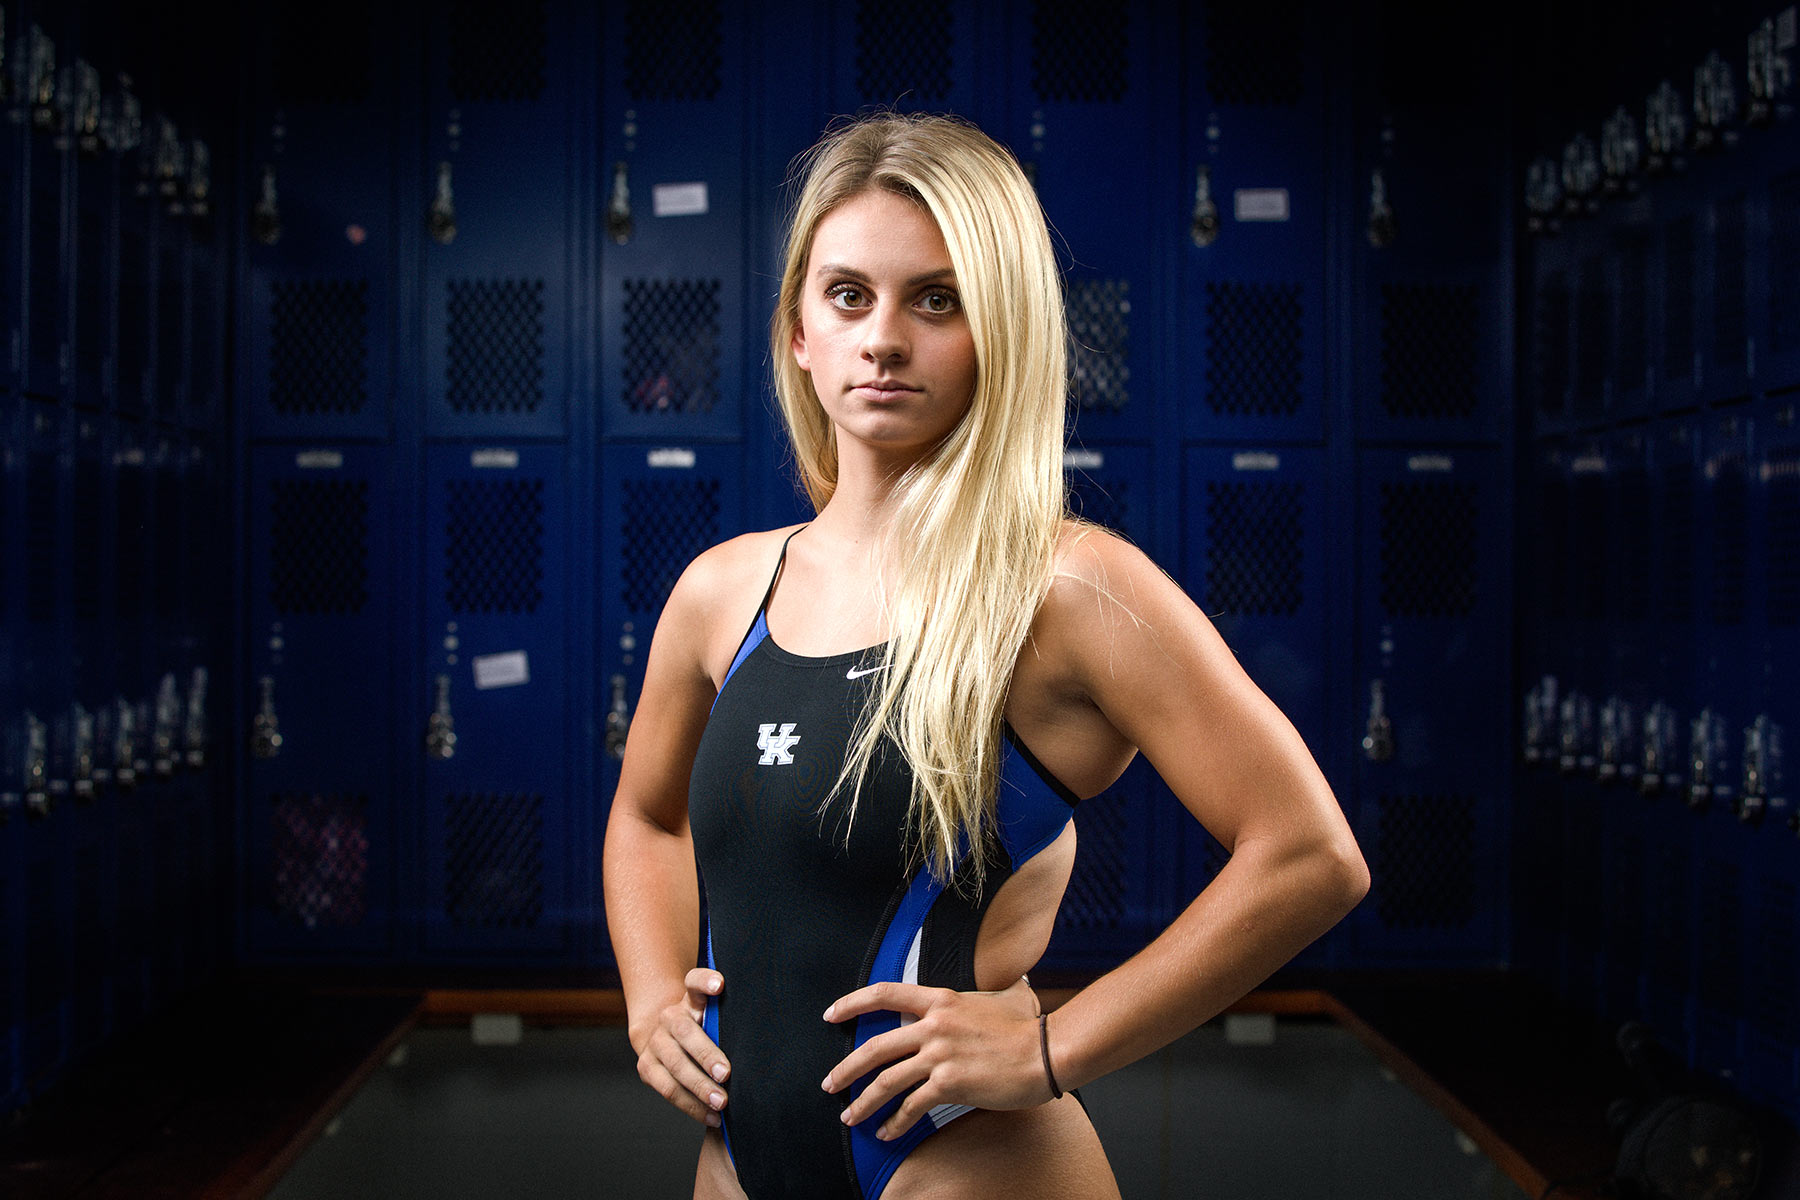 Emma, wearing a blue and black UK one-piece swimsuit, stands with her hands on her hips. She's in a blue locker room and looks strong.